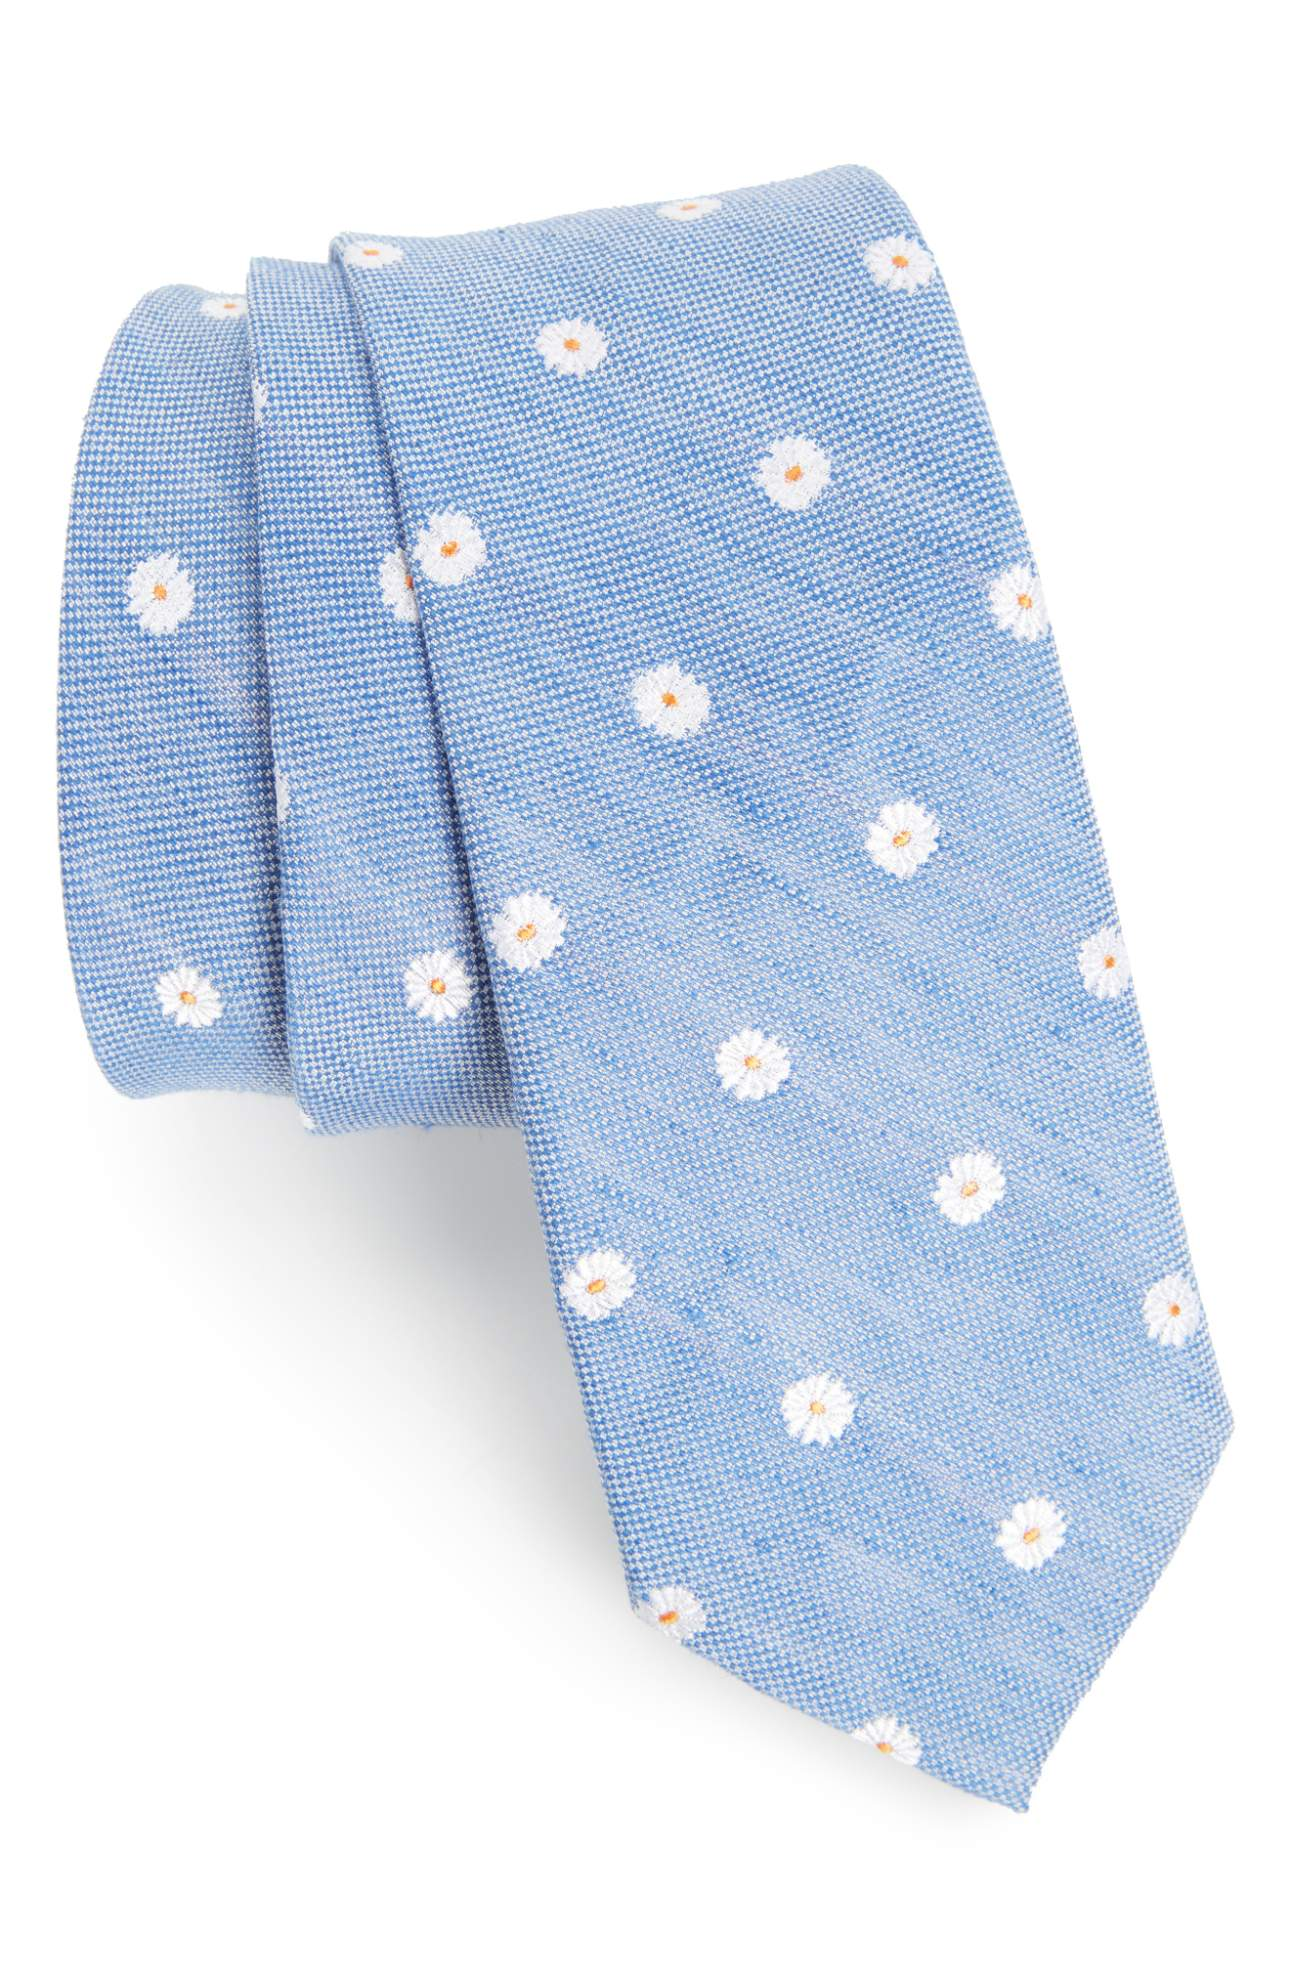 If you're anything like my husband and you refuse to shop for an Easter outfit, this tie is a perfect addition to something that's already in your closet.{ } It's charming and makes it appear as though you gave an effort. Price: $39.50 (Image: Nordstrom){ }